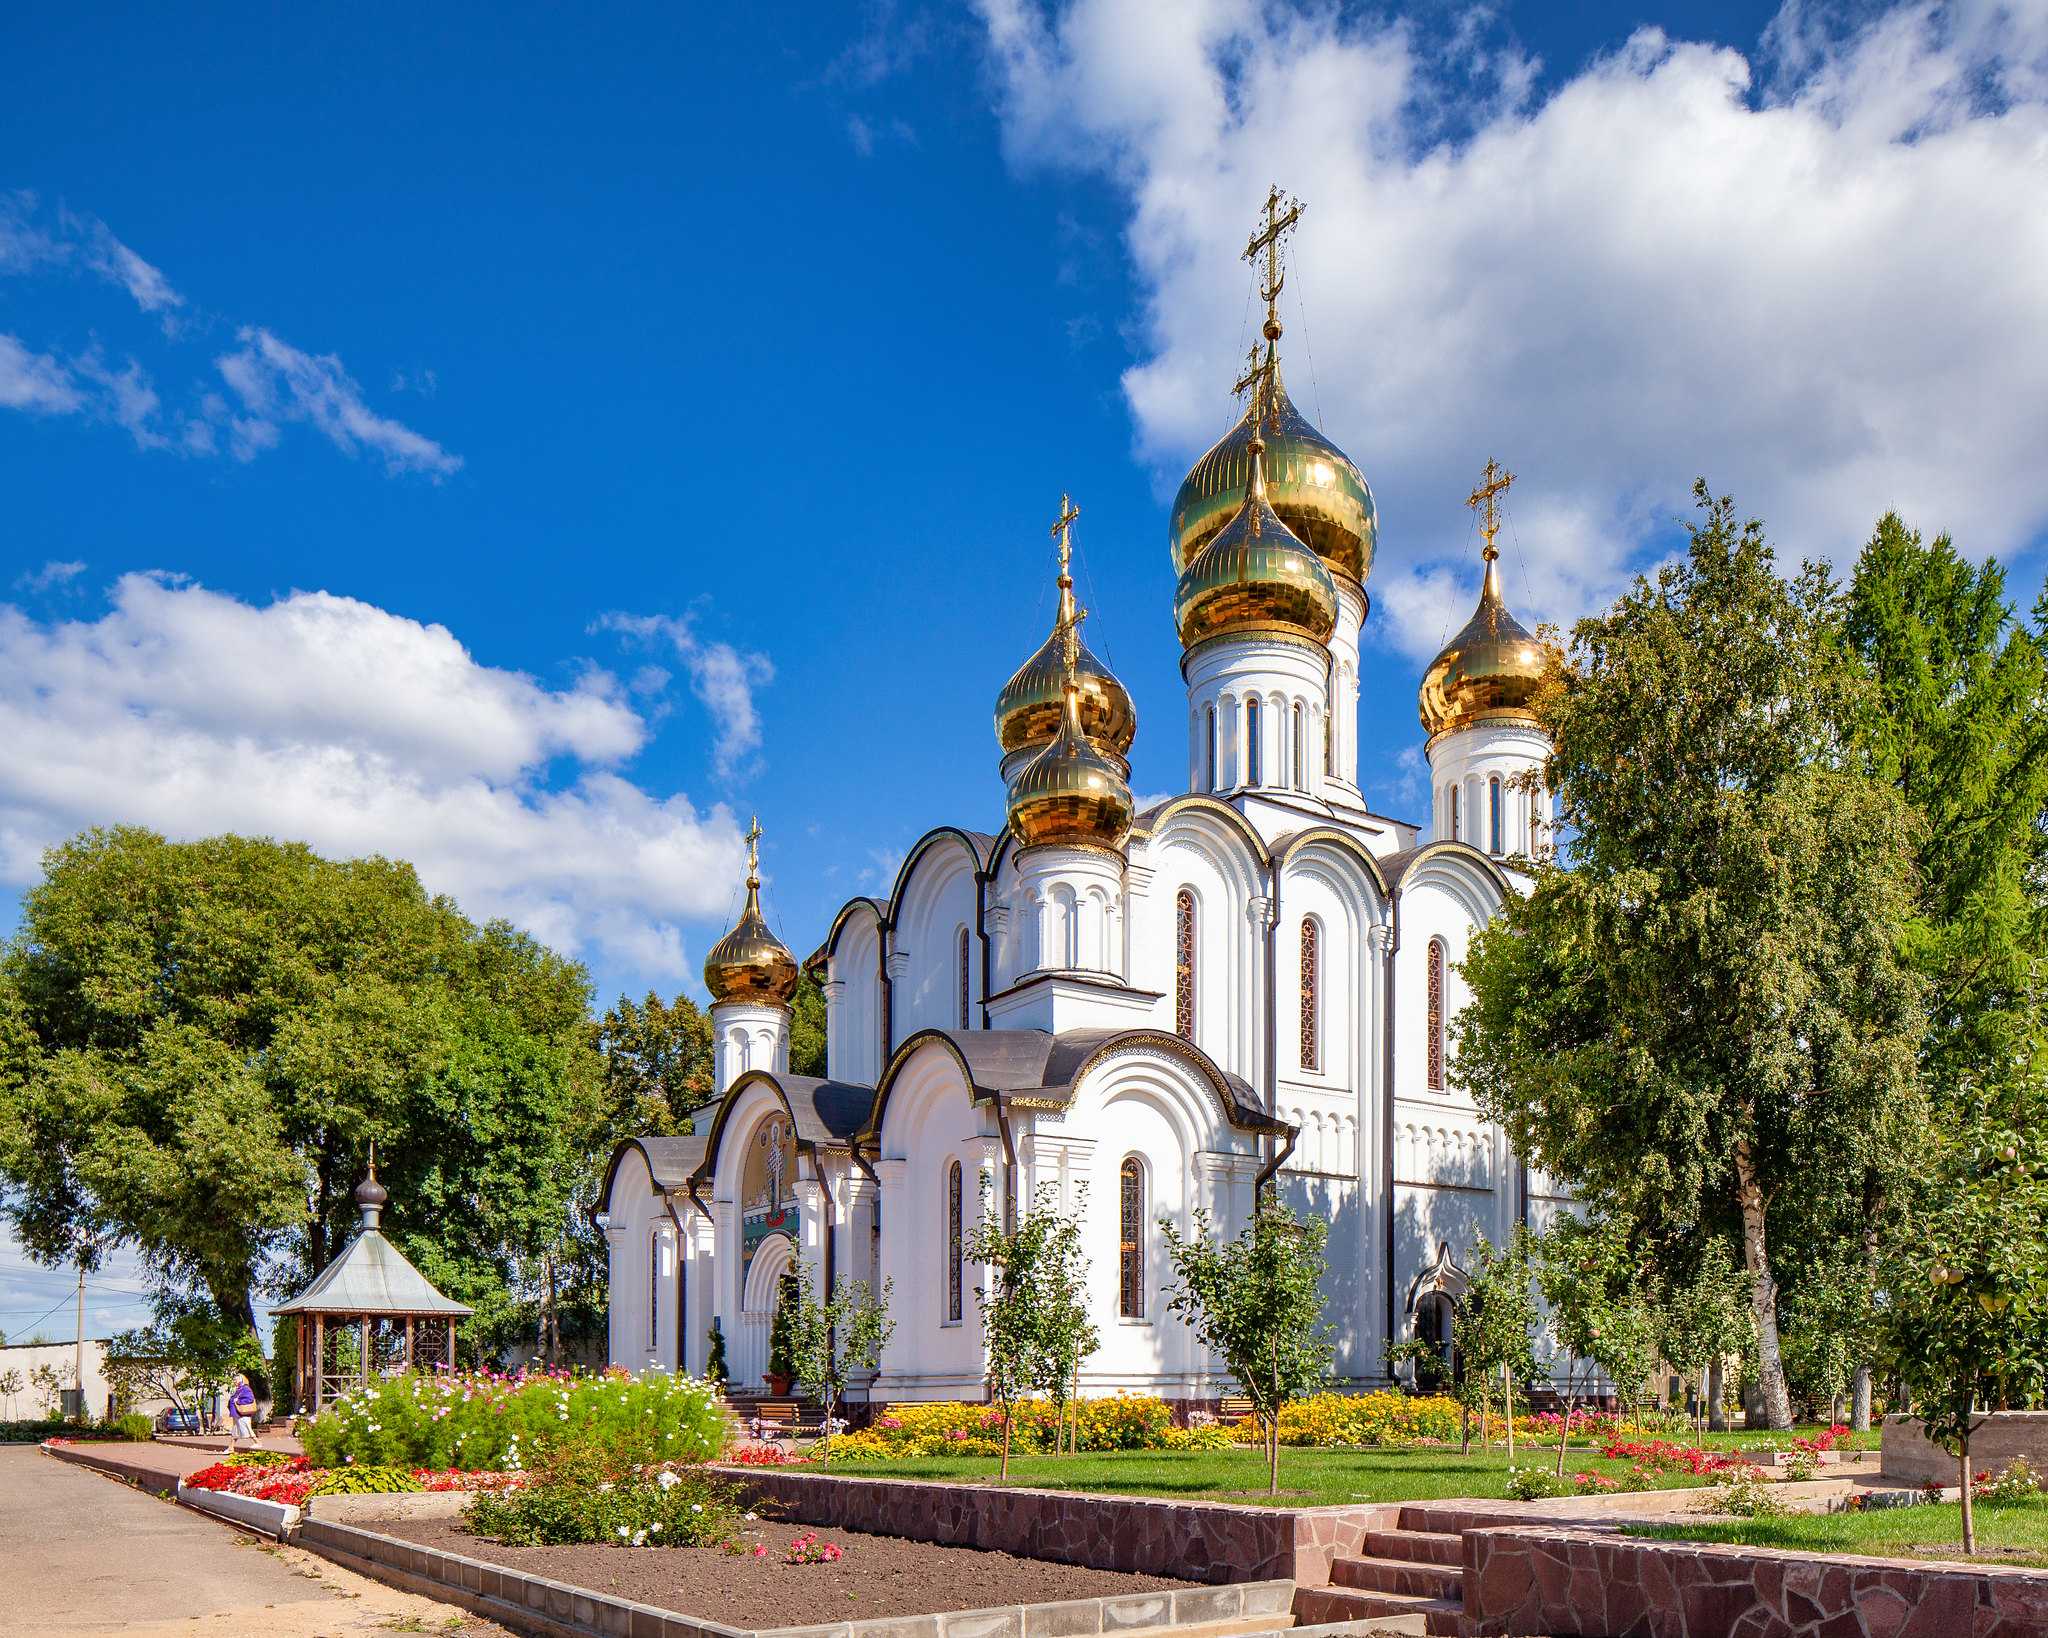 St. Nicholas Cathedral in Nicholas Convent (Pereslavl-Zalessky, Russia)